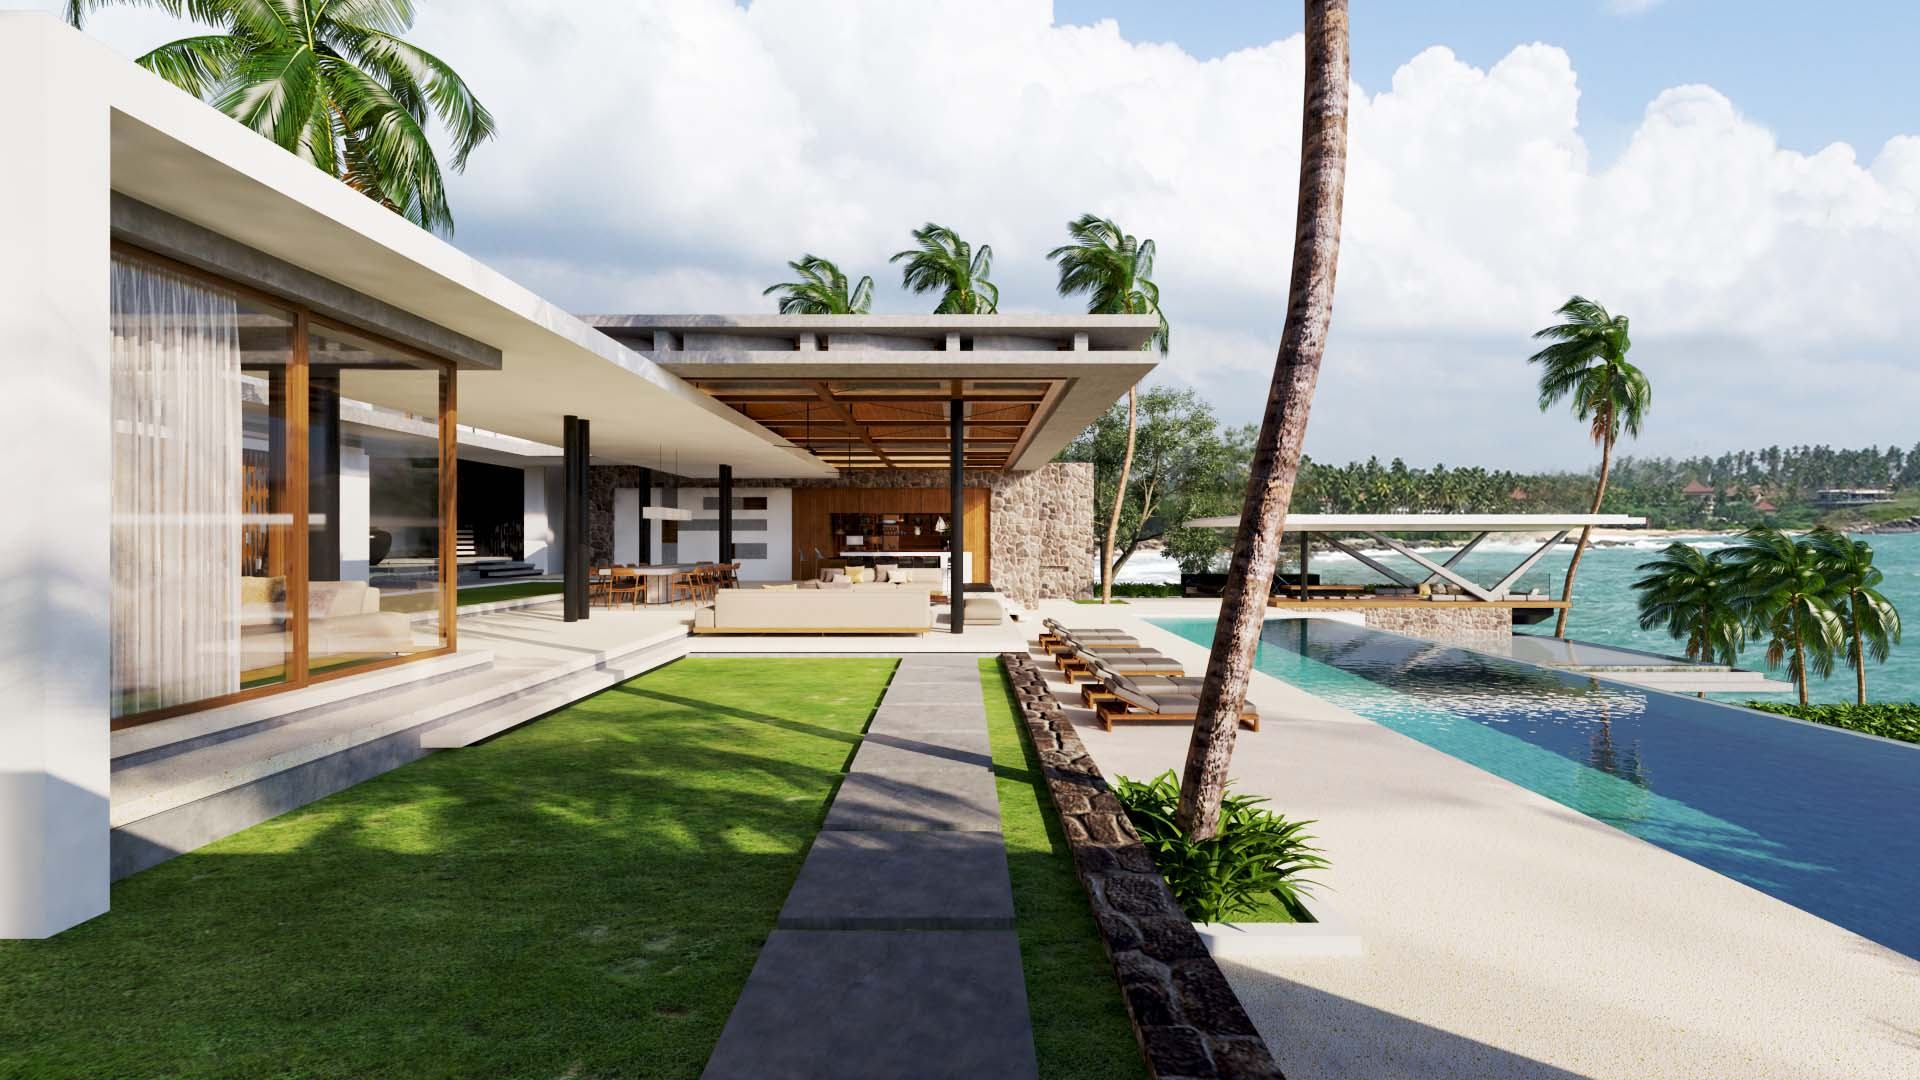 Projects Photo/2 Villas in Sri Lanka, Thangalla/thangalla-pool-side